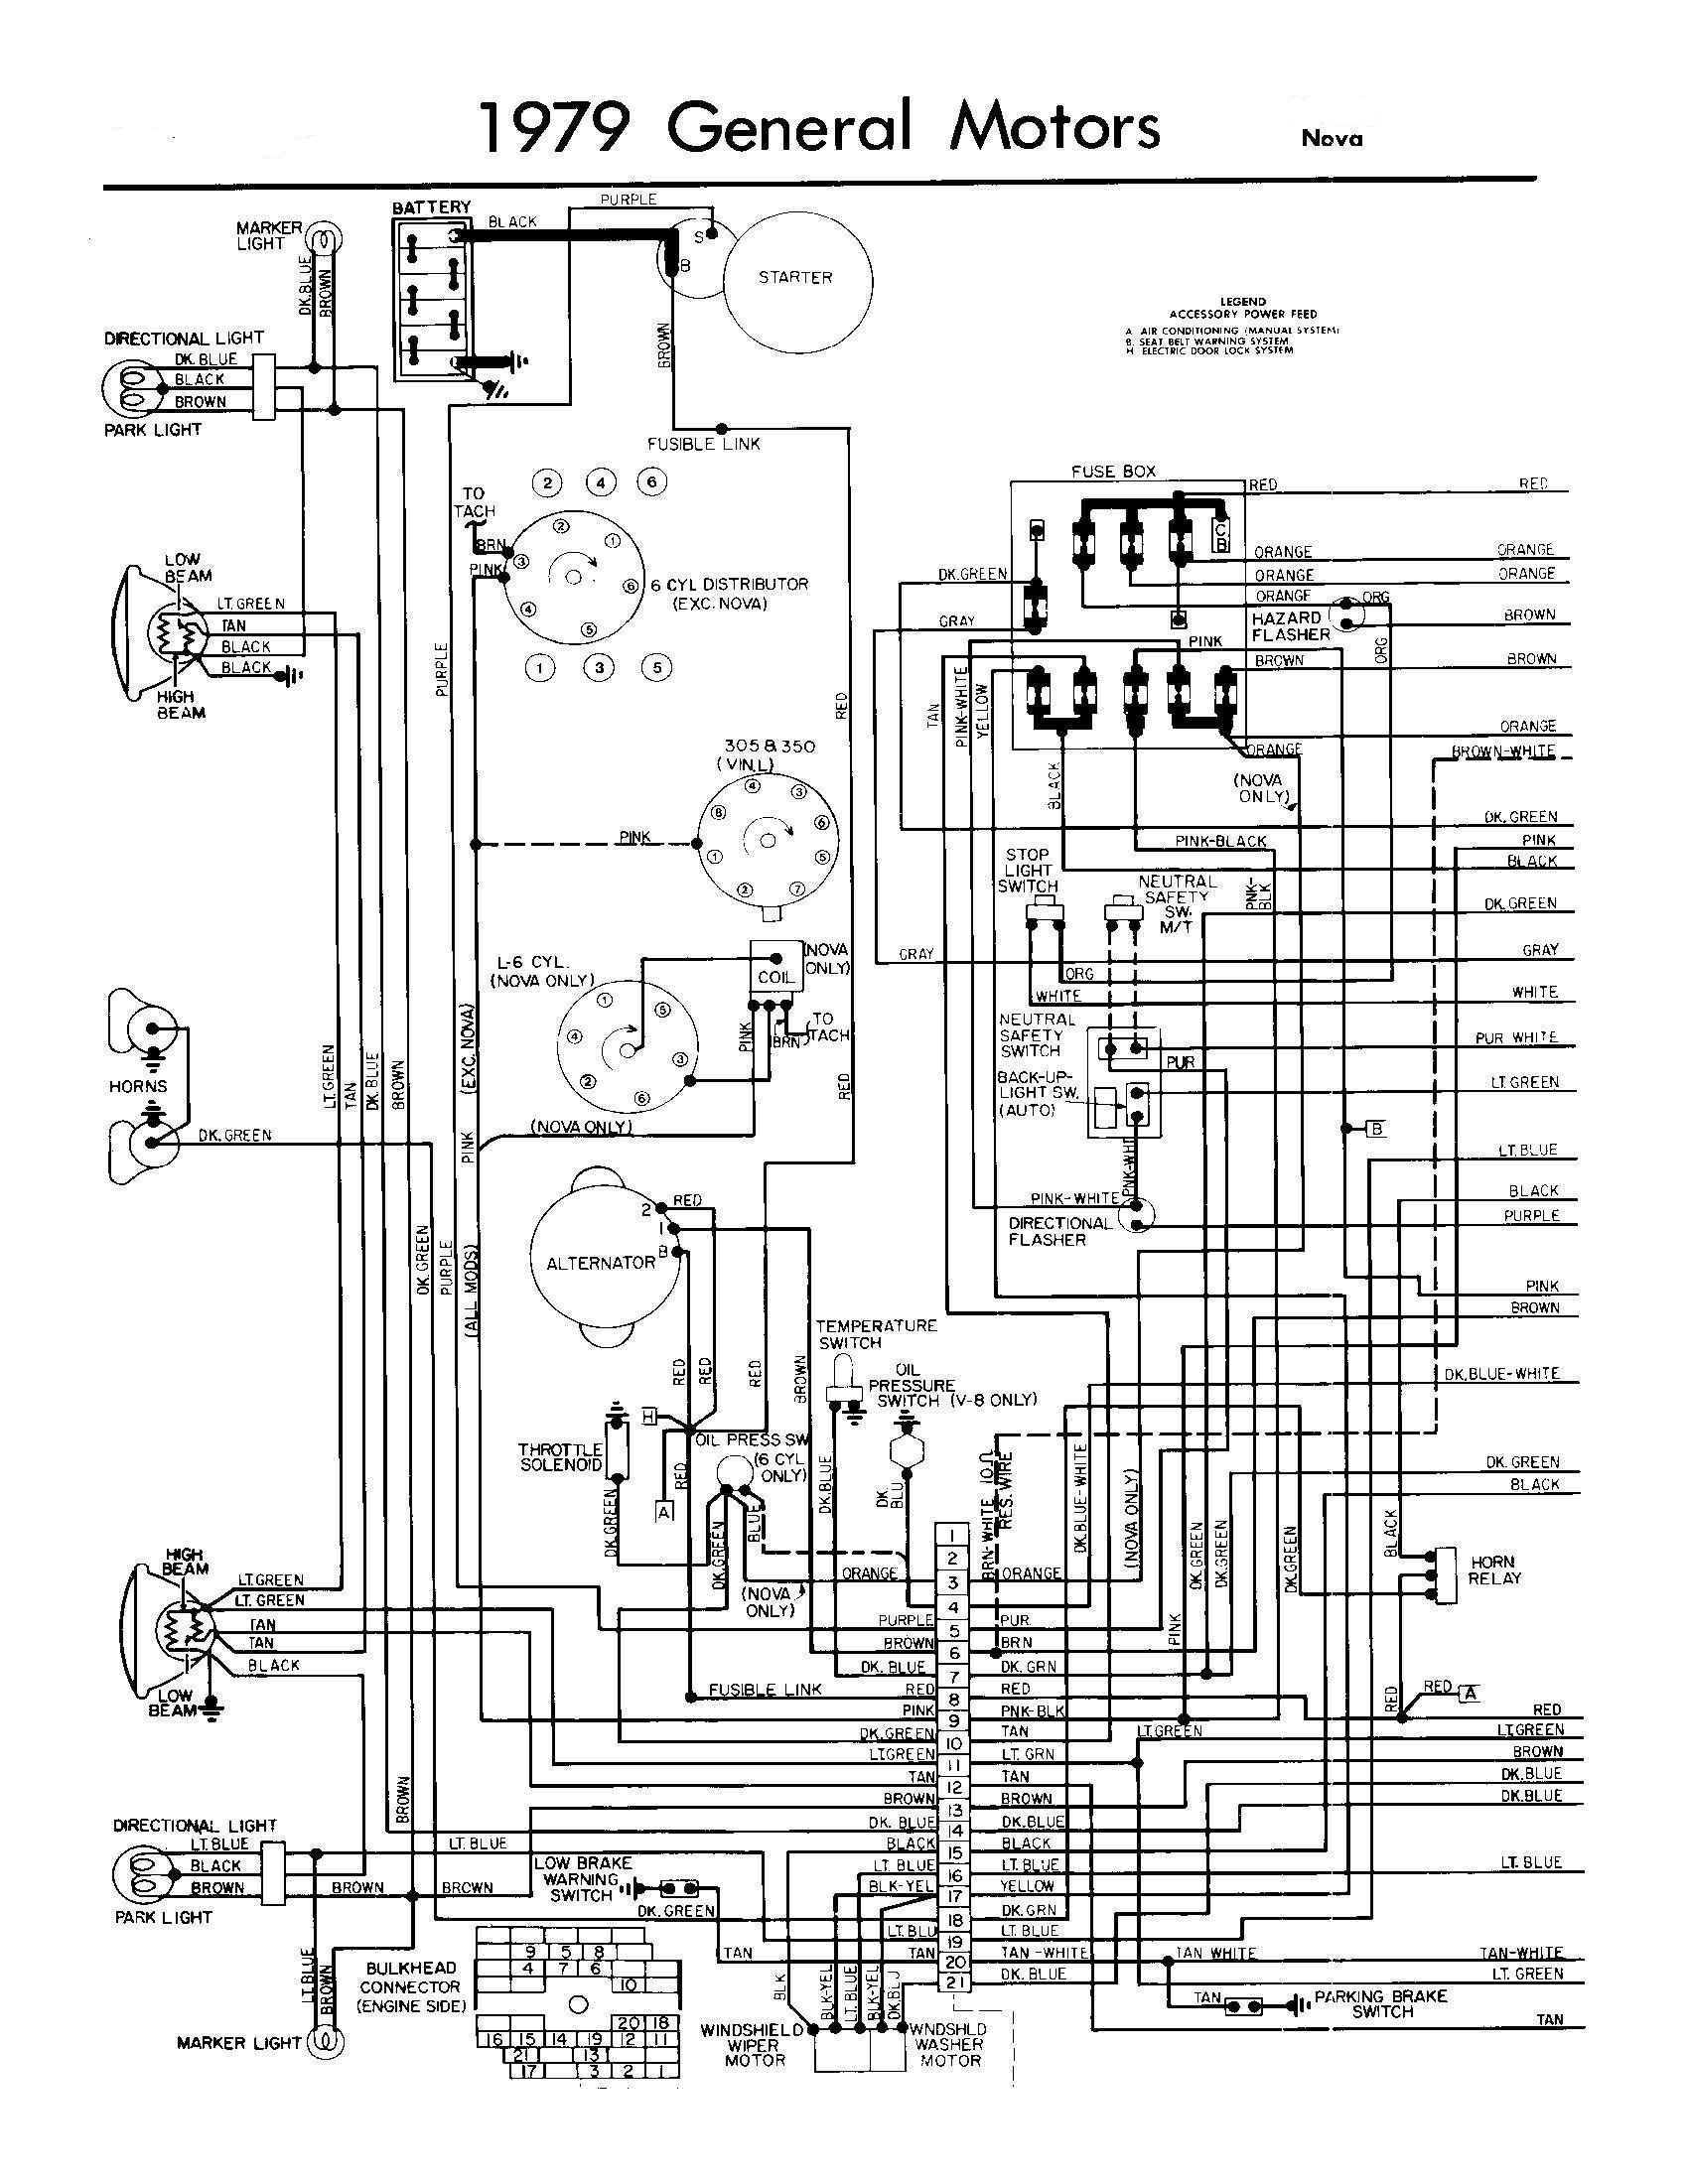 Wiring Diagram Or Schematic - Introduction To Electrical Wiring ...